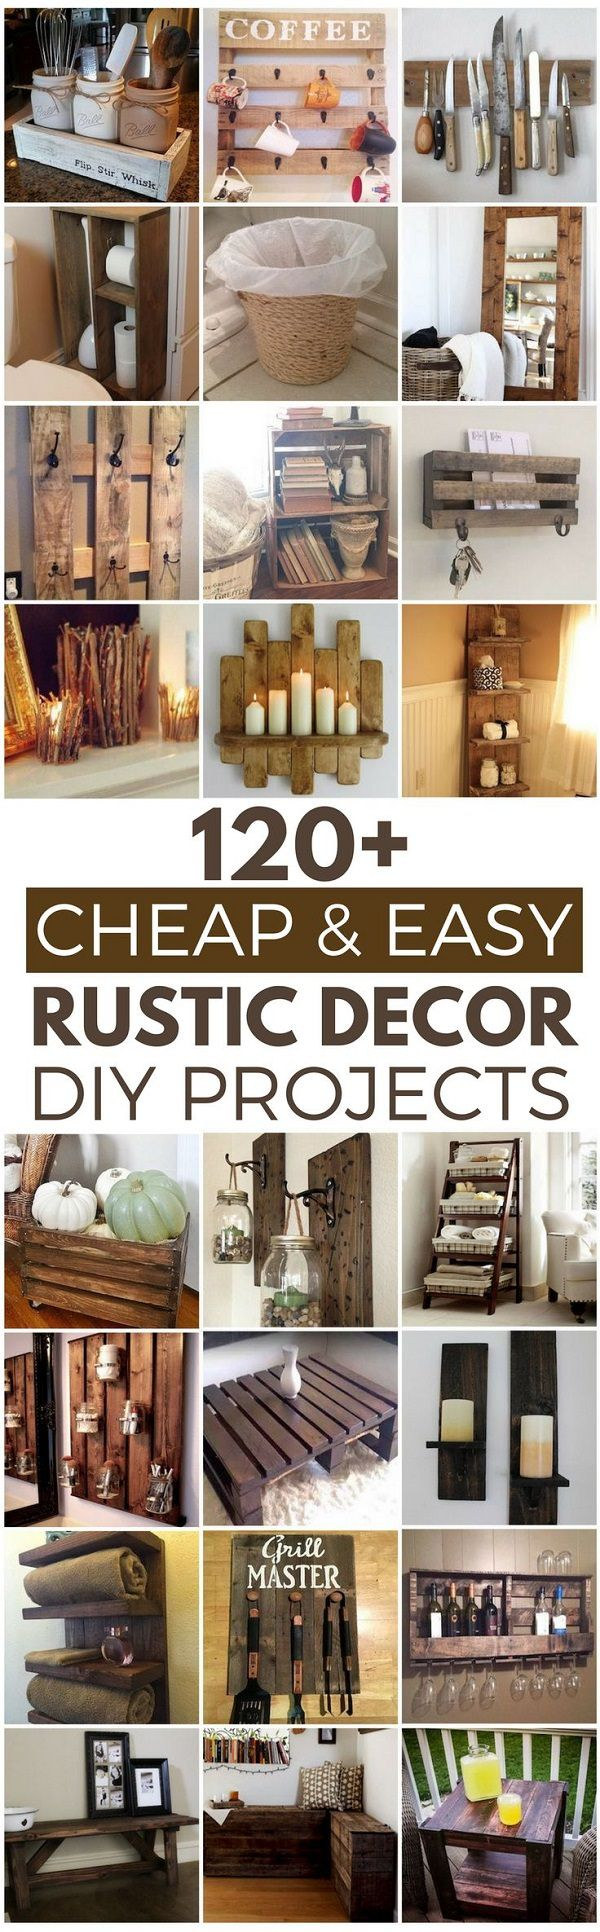 120 cheap and easy diy rustic home decor ideas - Home Decor On A Budget